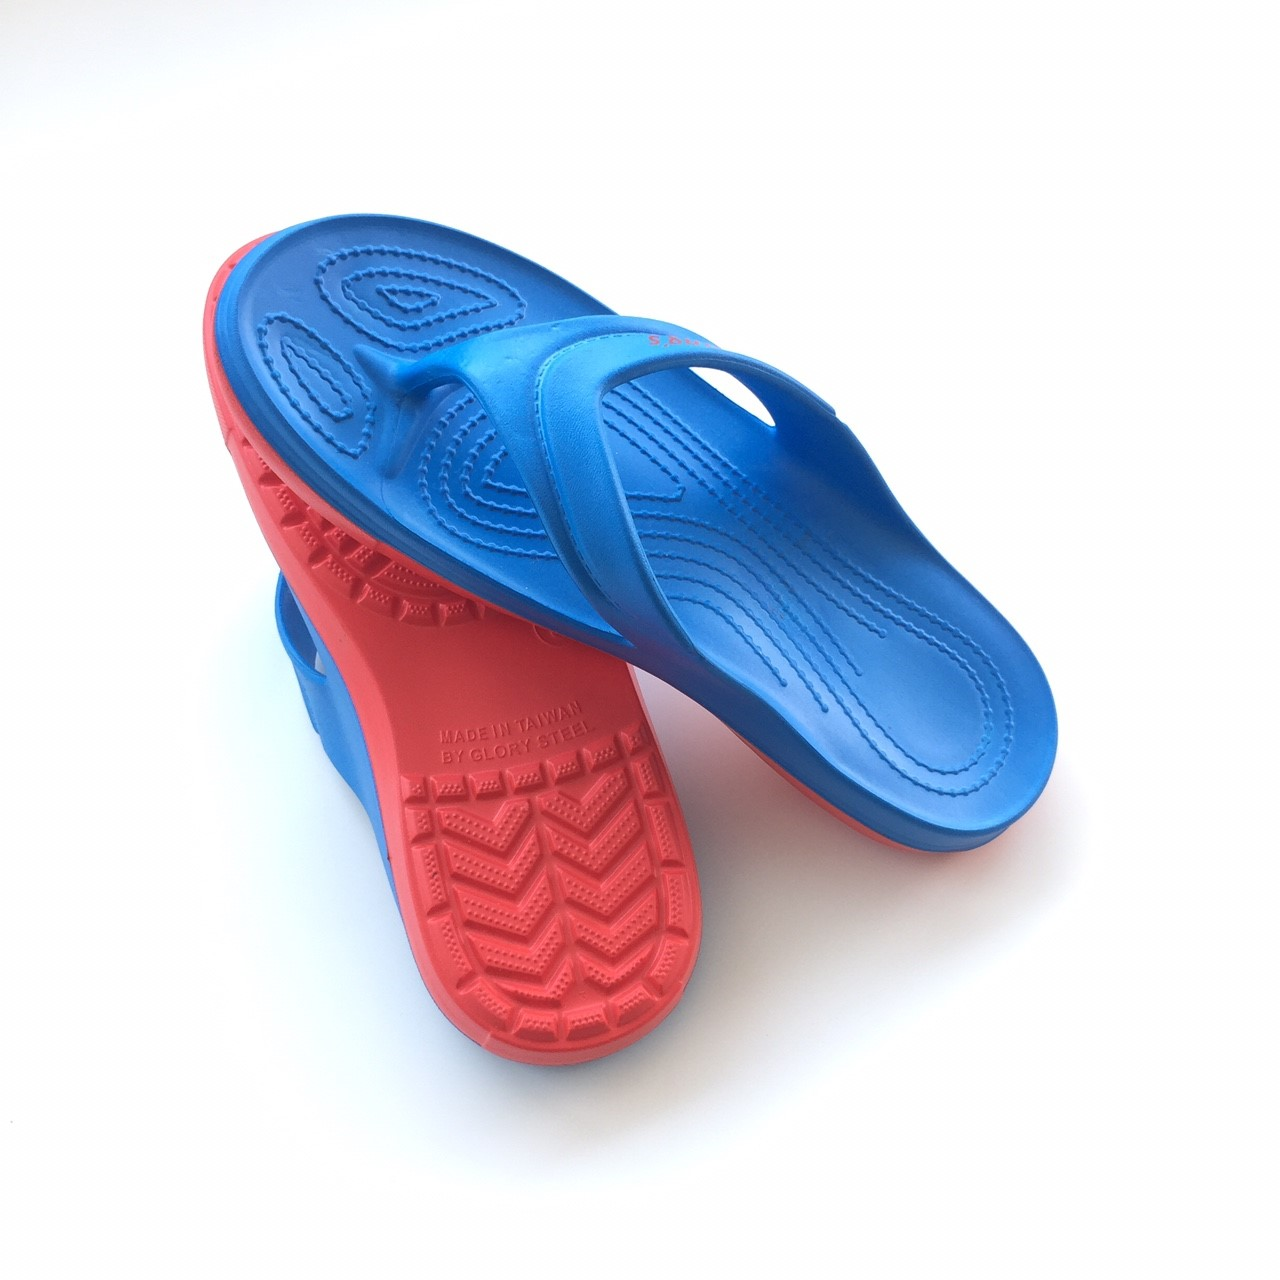 made in Taiwan custom oem odm wholesale new slippers thong sandals